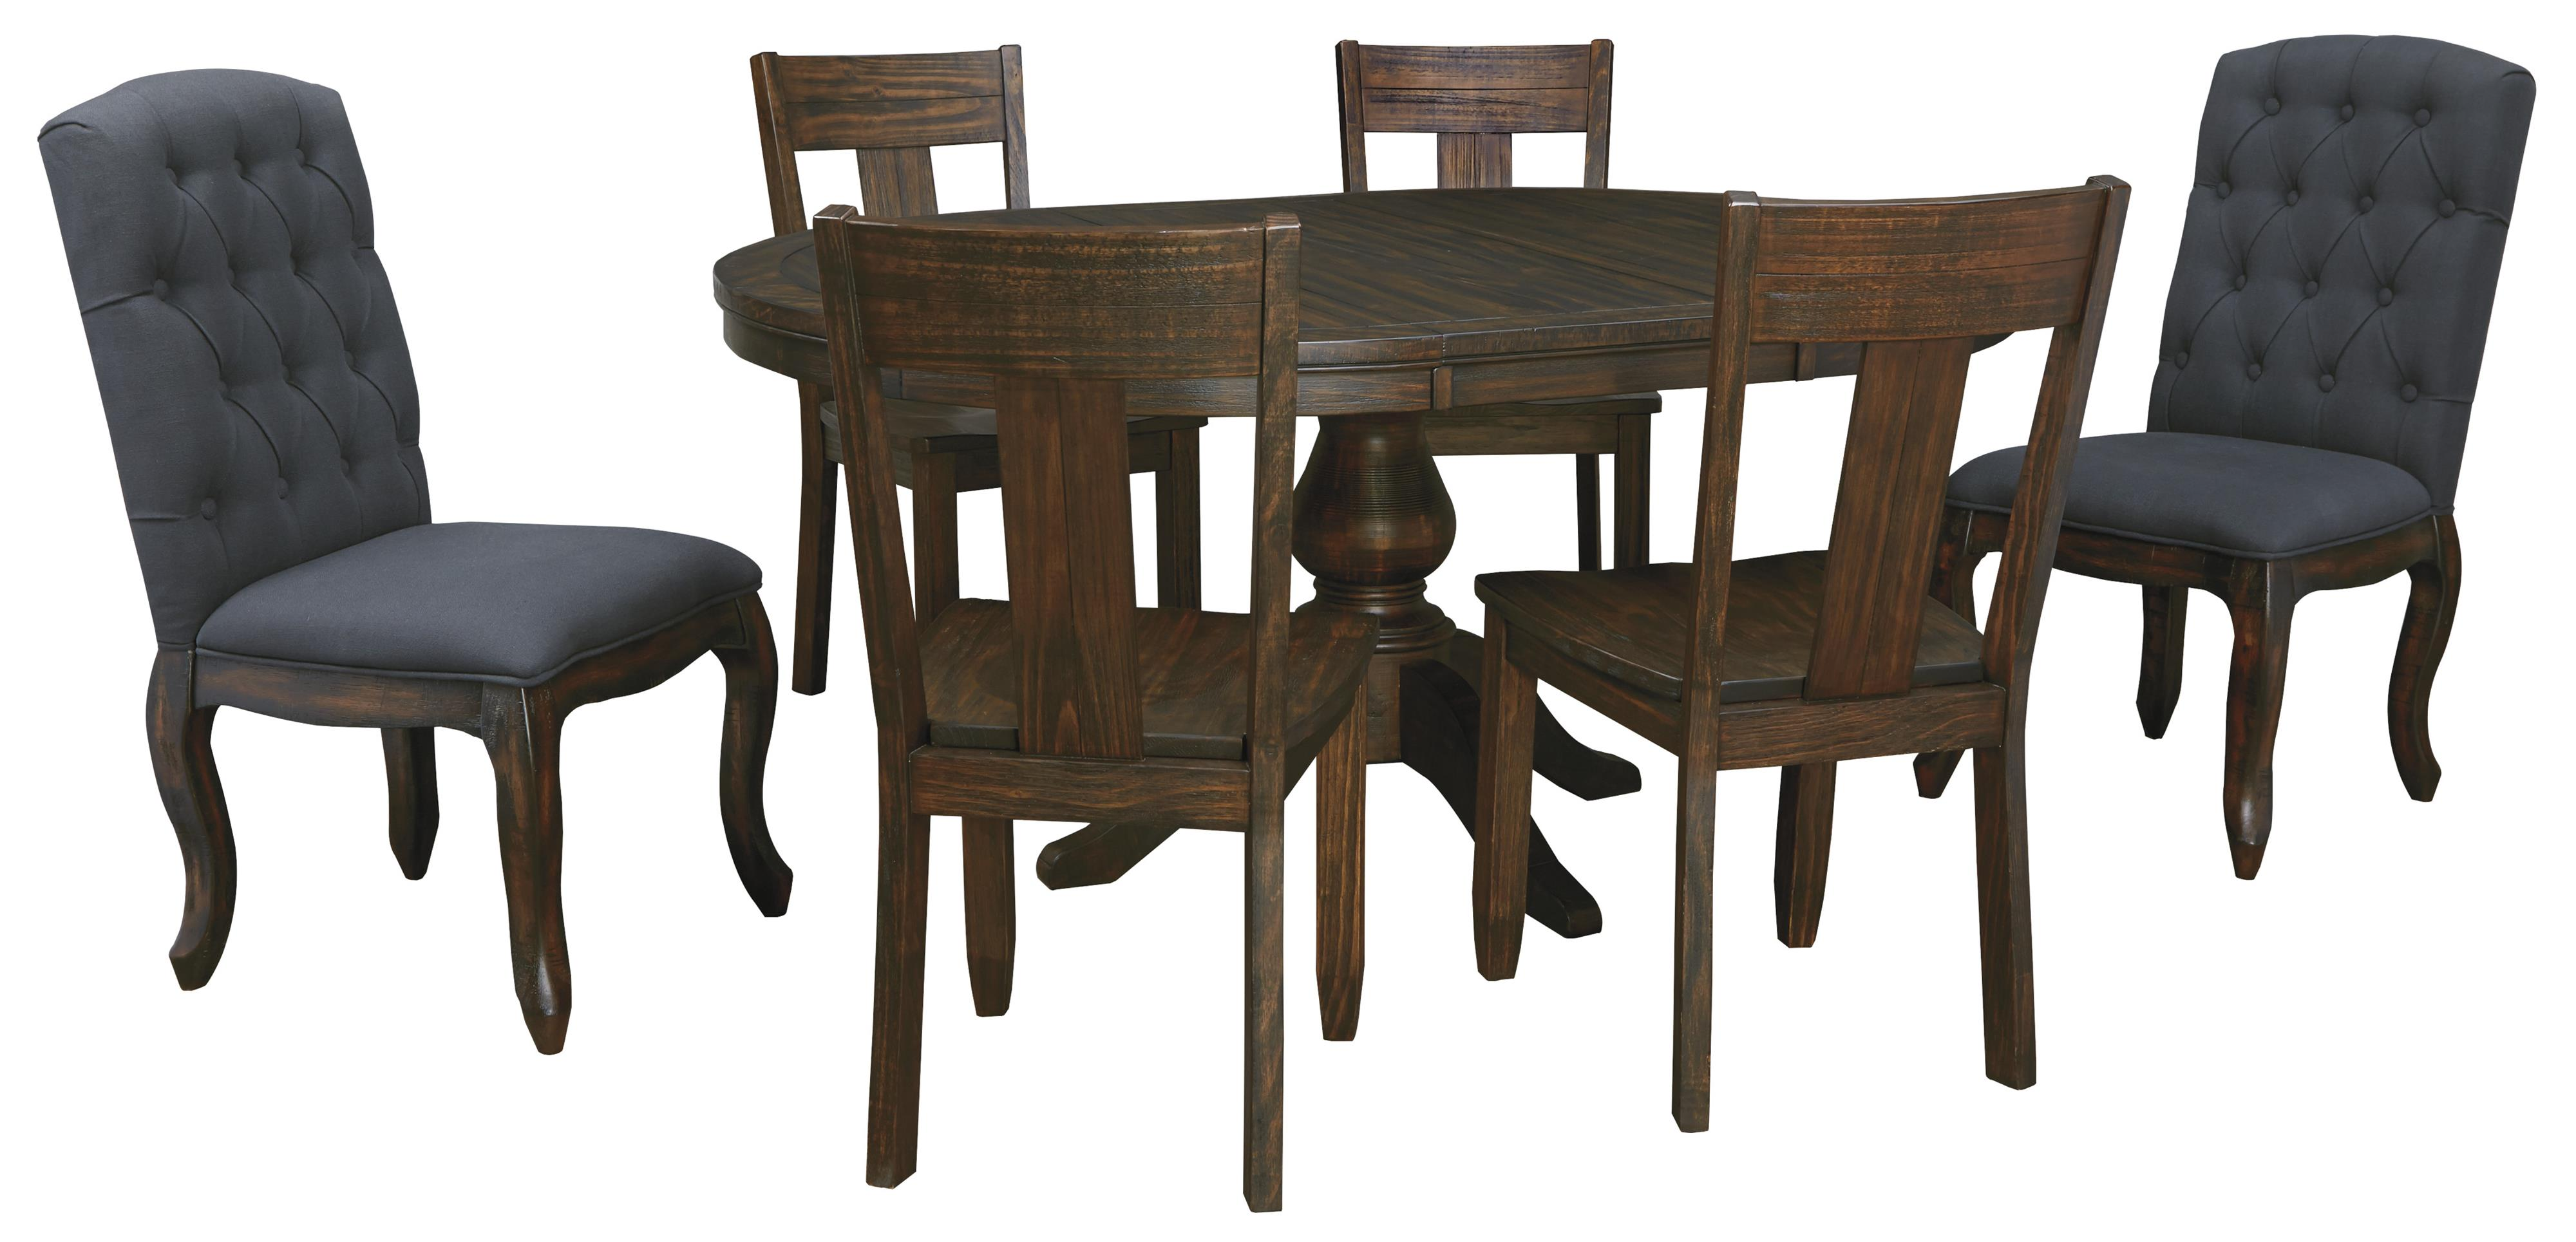 7 Piece Oval Dining Table Set With Upholstered Chairs U0026 Wood Seat Chairs